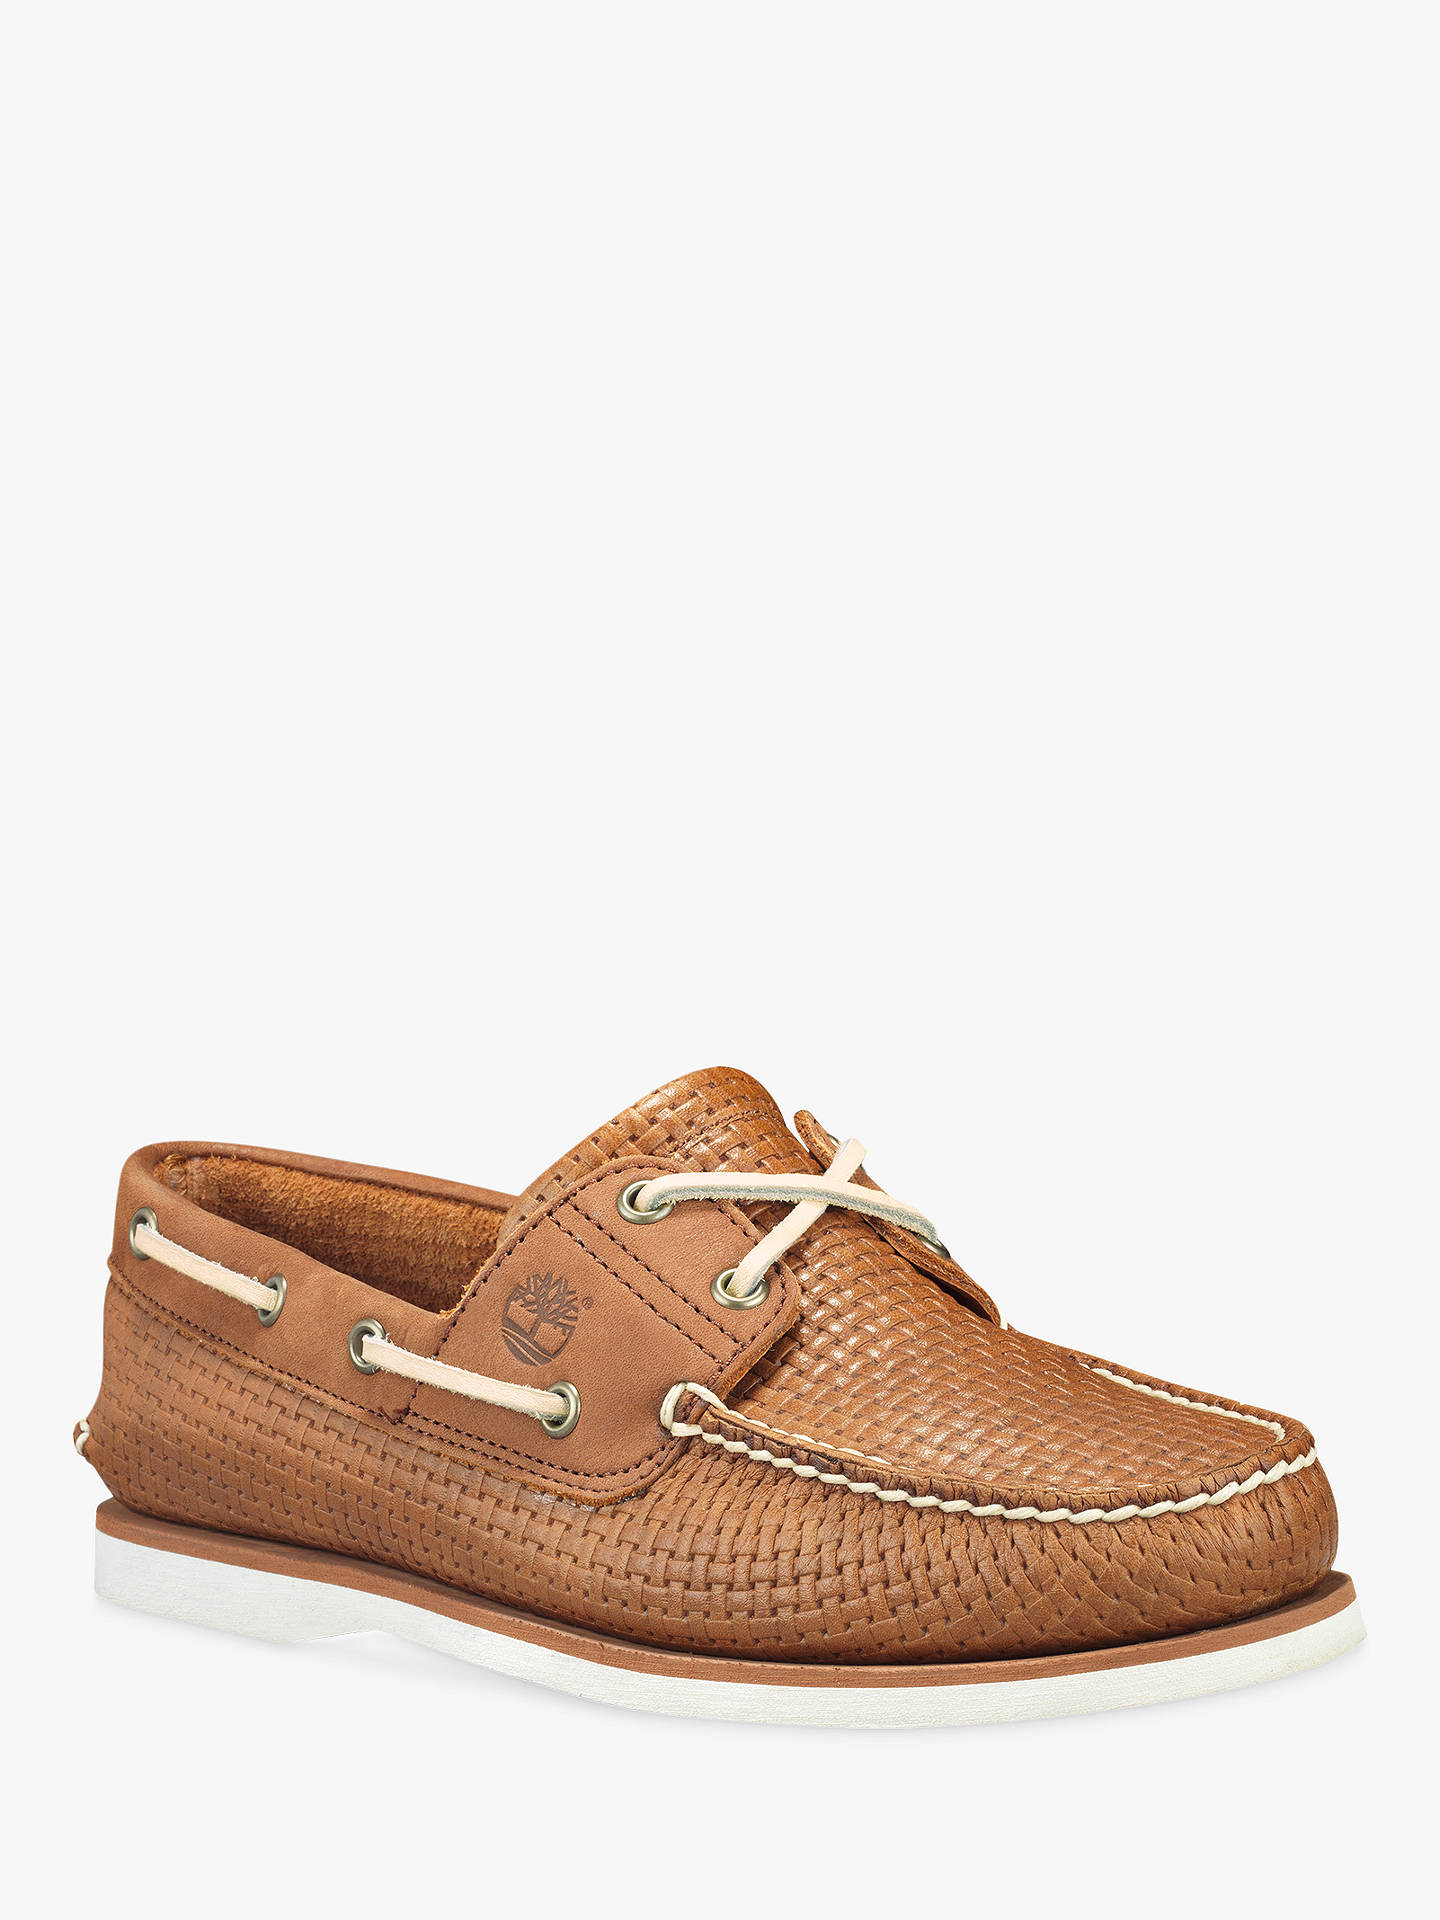 edc9f6e5d848 Buy Timberland Classic Weave Boat Shoes